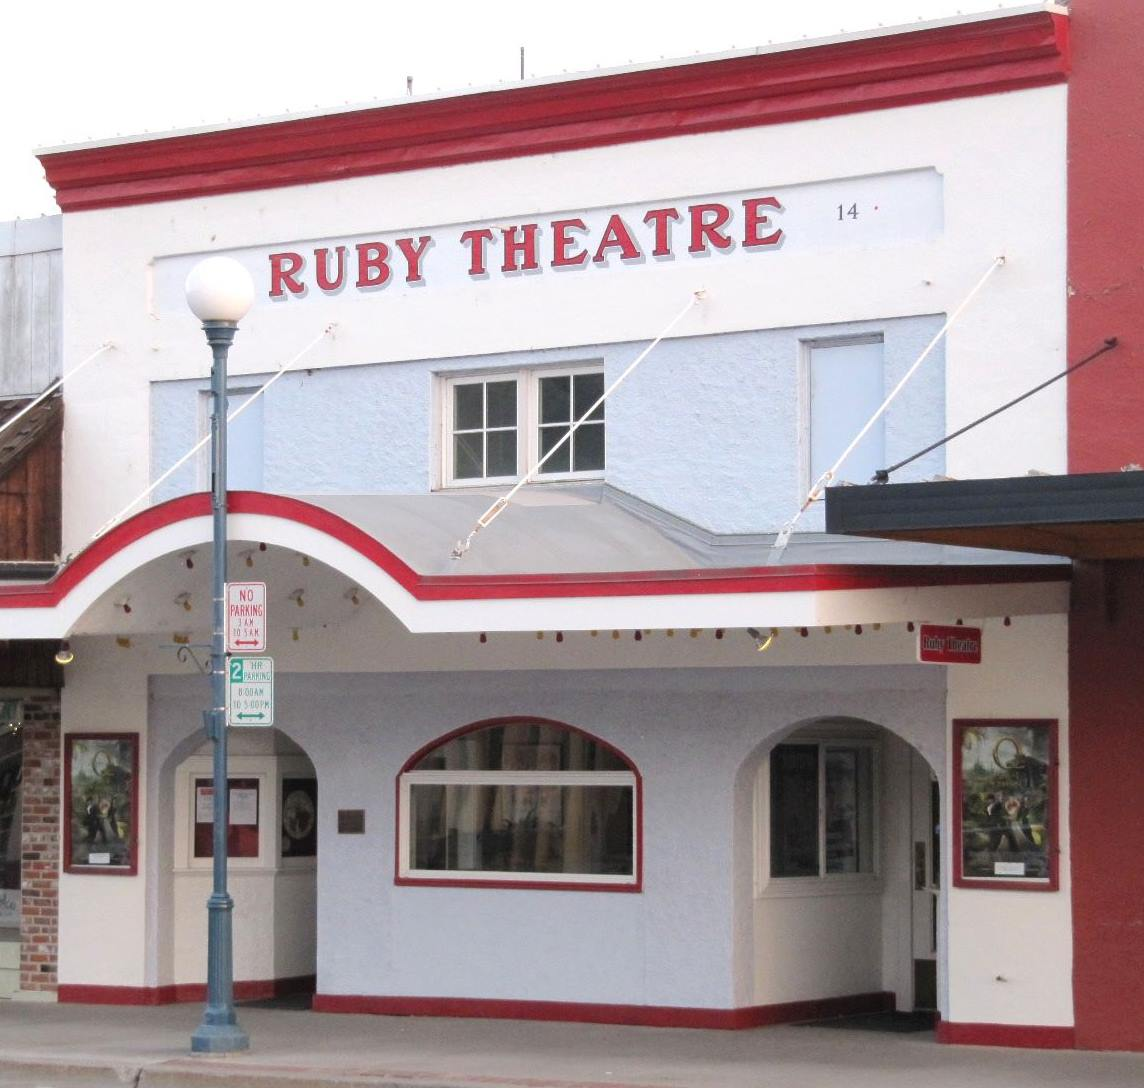 The Ruby Theatre has been a fixture in Chelan, WA since 1914 when it was built, and named after the first manager's daughter. It's believed to be the oldest running film theater in the state, and we'd be pretty comfortable guessing that extends to the Northwest. 135 E Woodin Ave. Chelan, Washington. (Image: Ruby Theatre Facebook page)